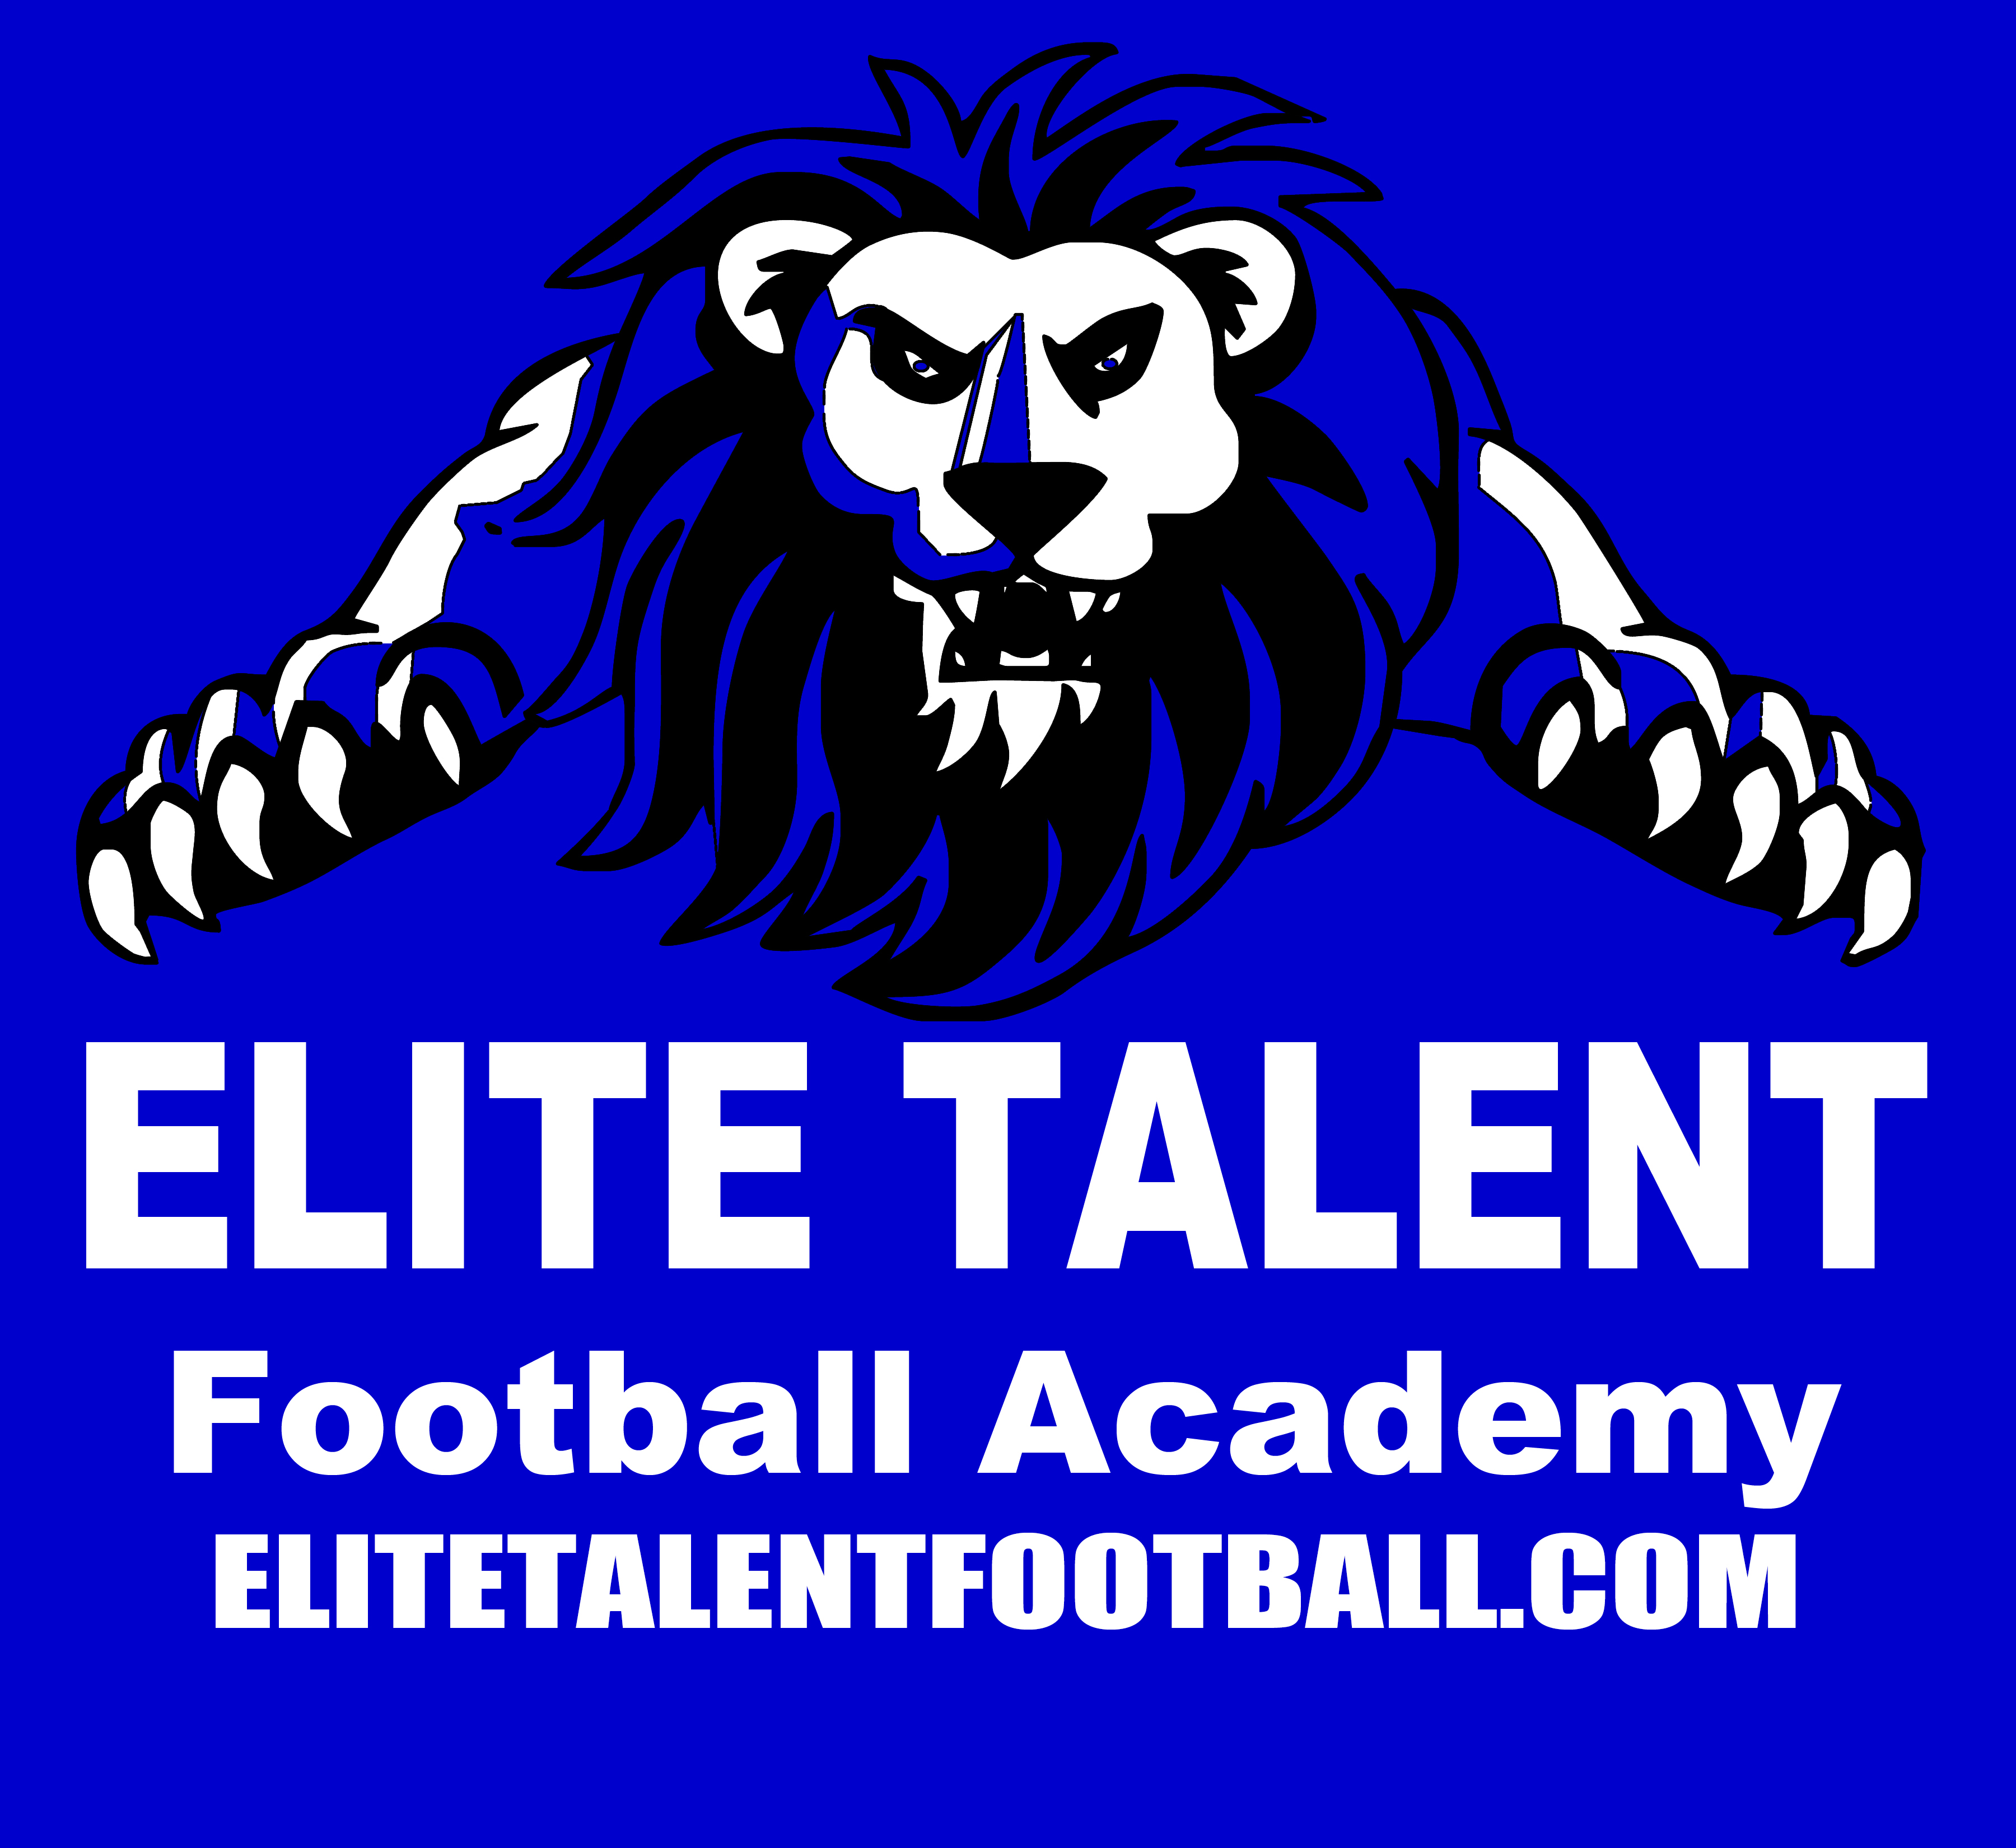 Derrick Tatum Of Elite Talent Football Academy Helps Over 500 Students With Football Scholarships